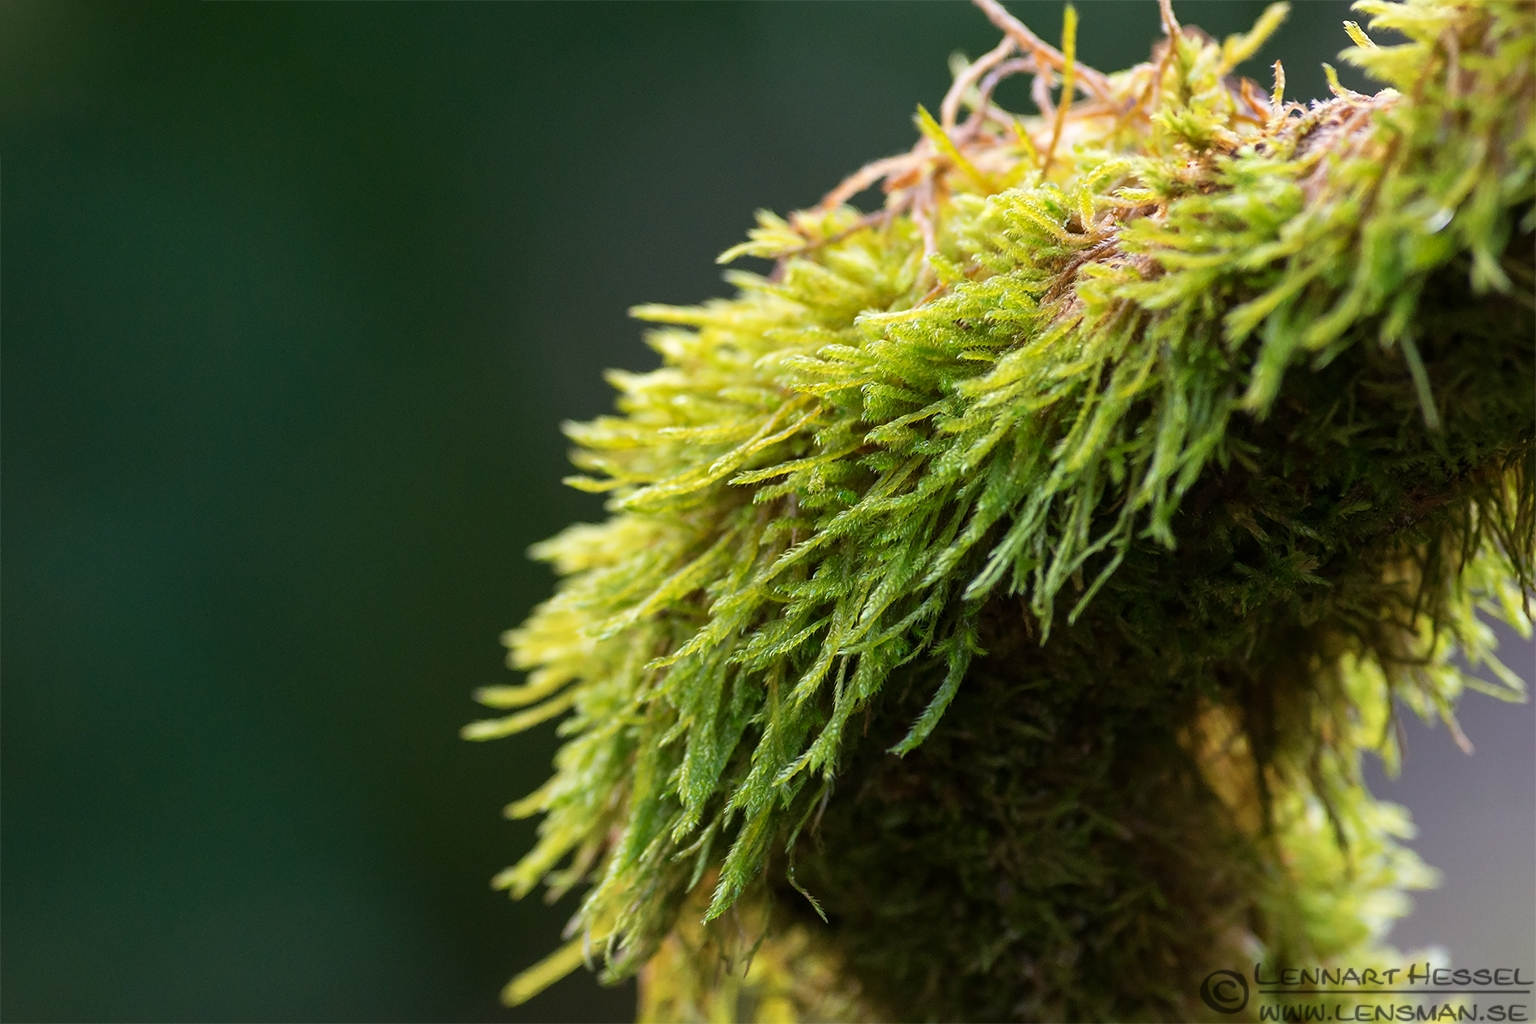 Moss photo from Gothenburgs Botanical Garden. testing